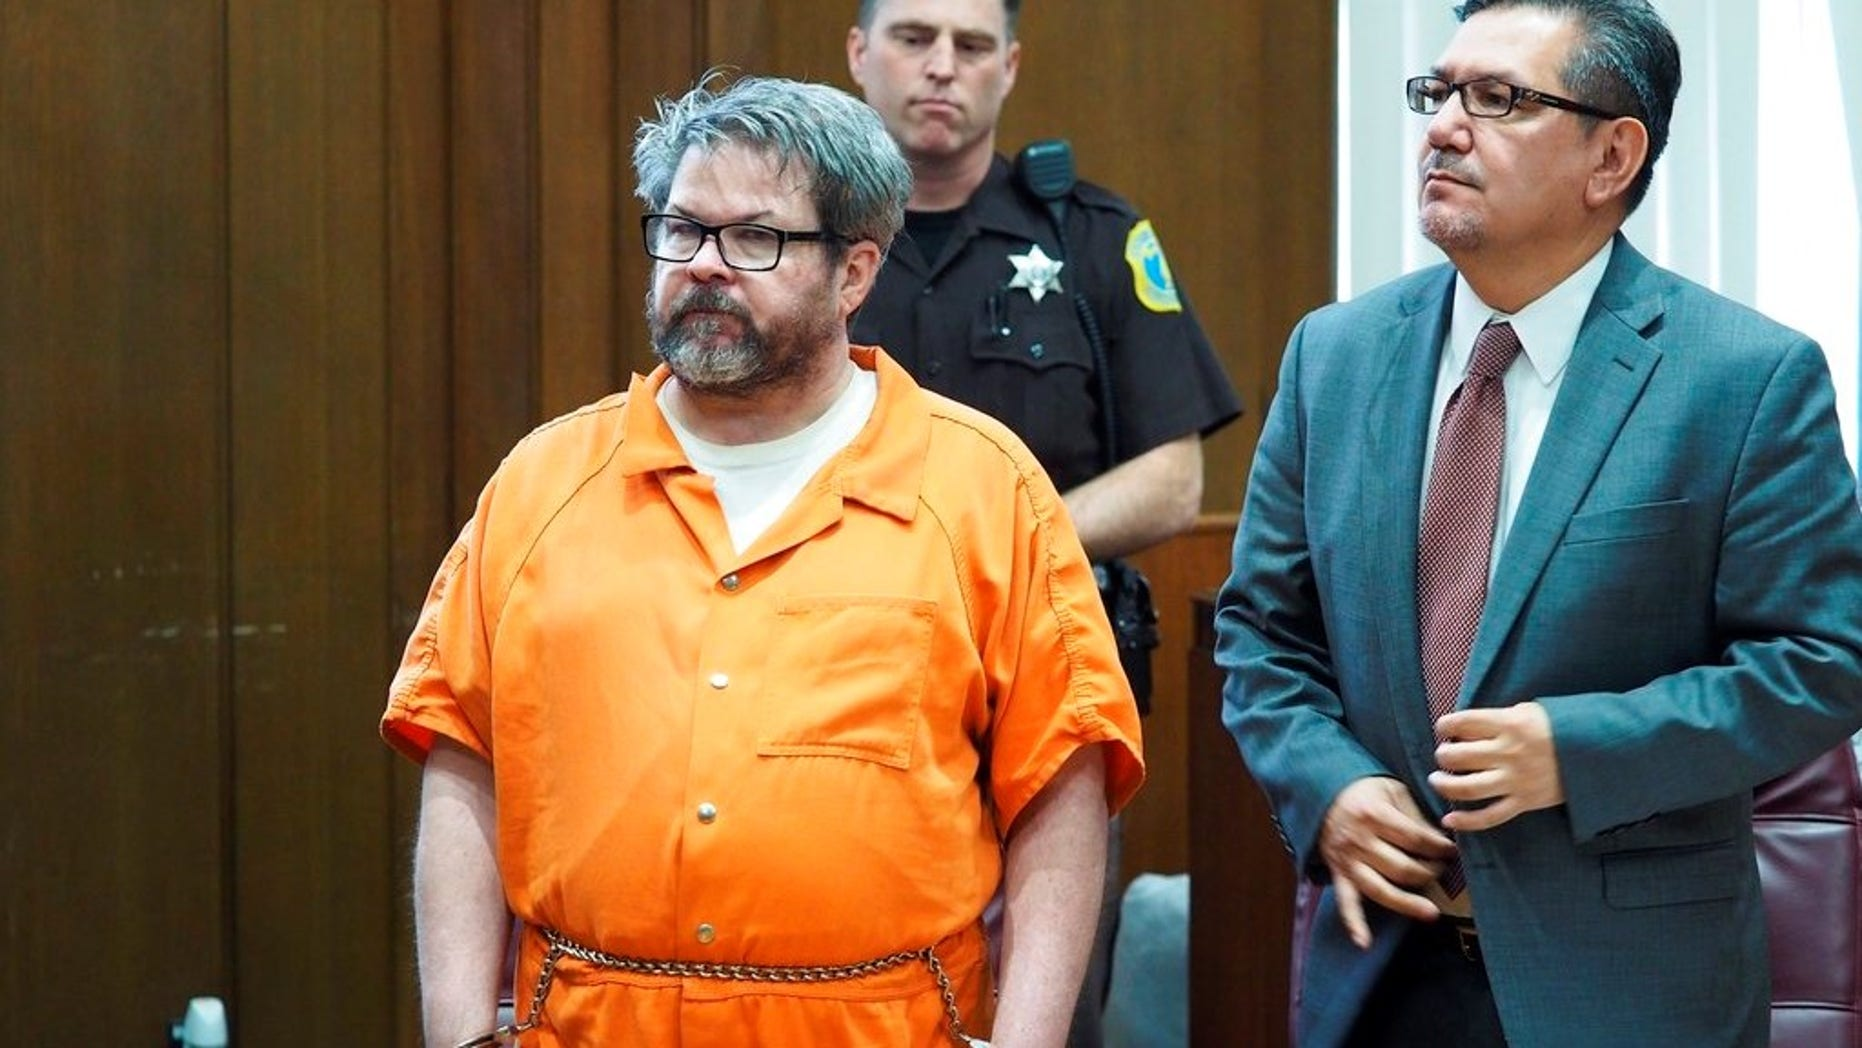 Jason Dalton pleaded guilty to killing six people during a shooting spree in Kalamazoo, Mich. in 2016.